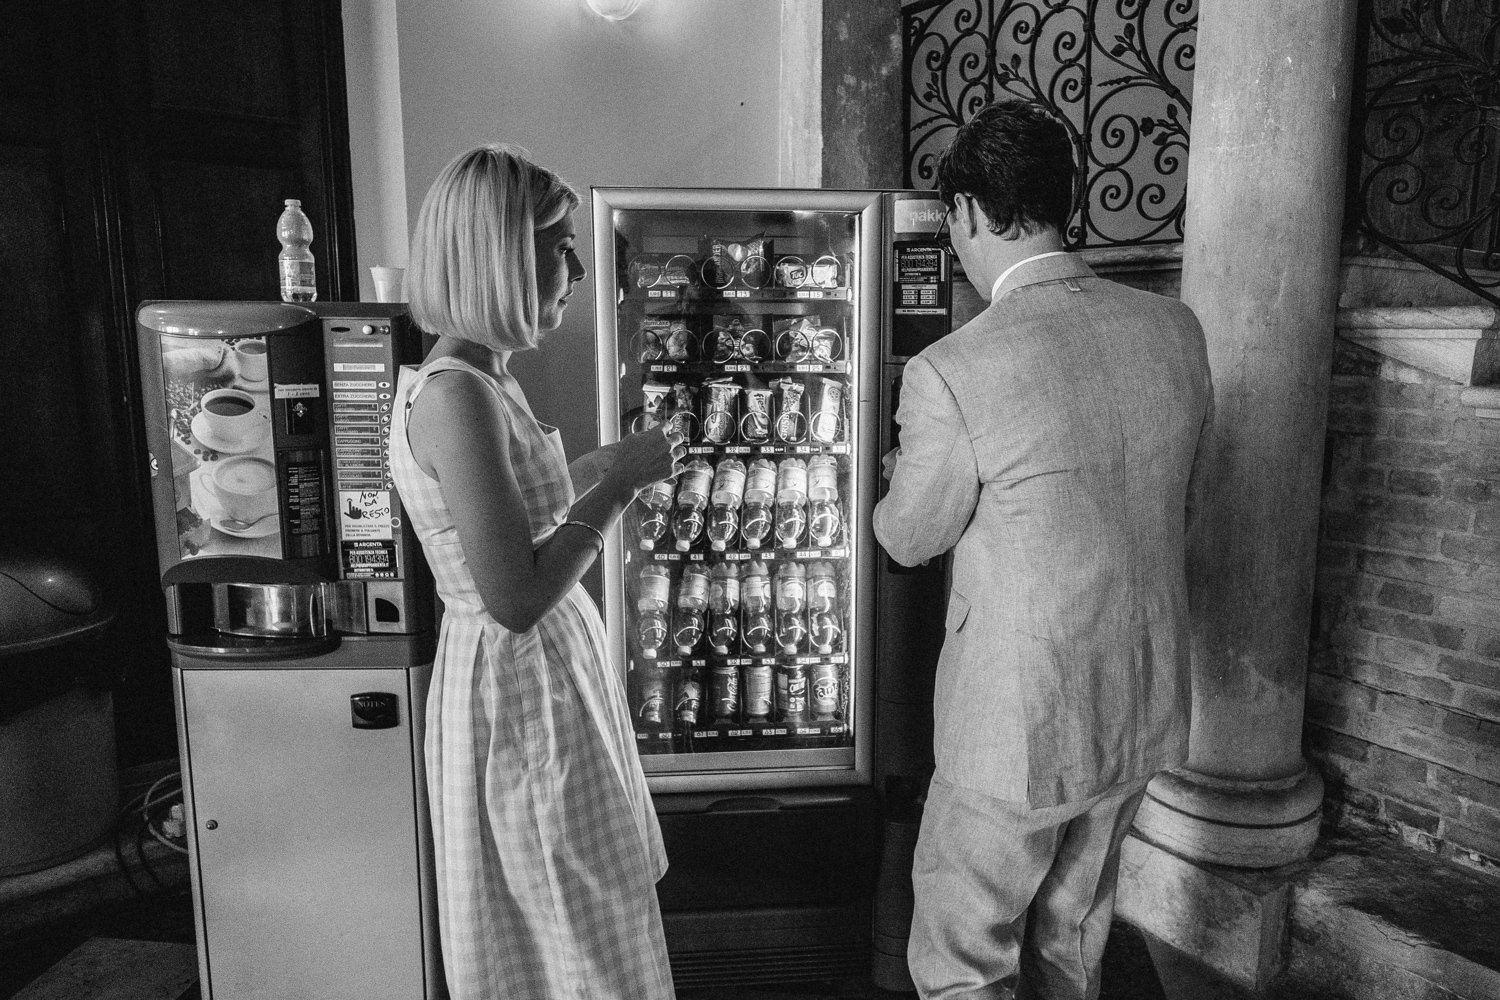 bride and groom getting a snack at vending machine xpro2